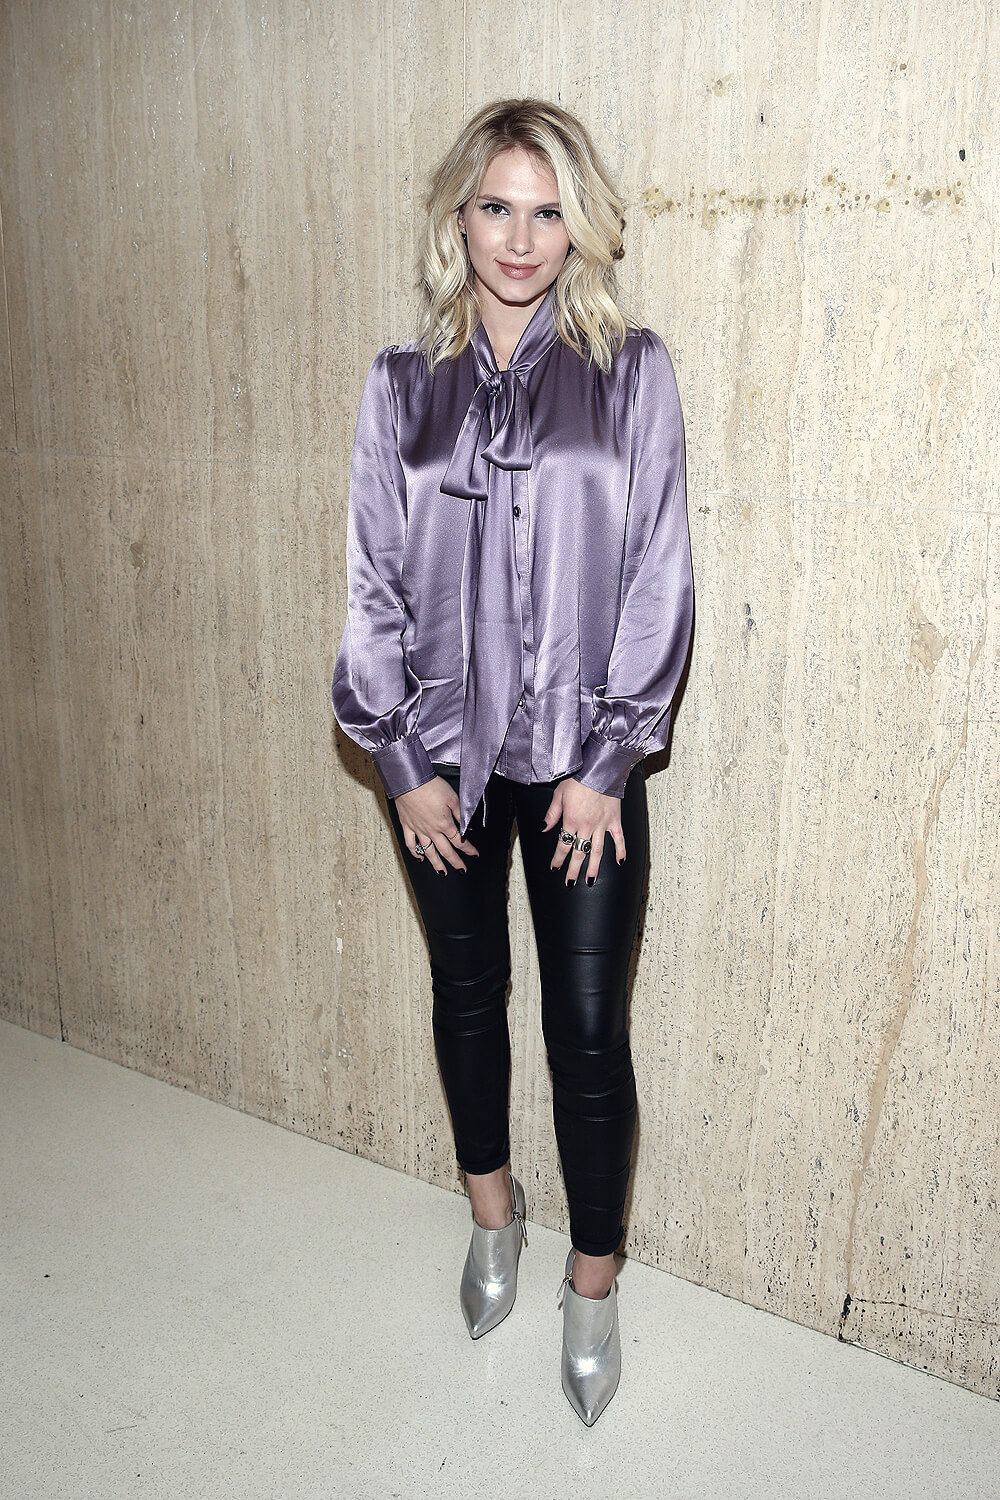 Claudia Lee attends Wolk Morais Collection 3 Fashion Show